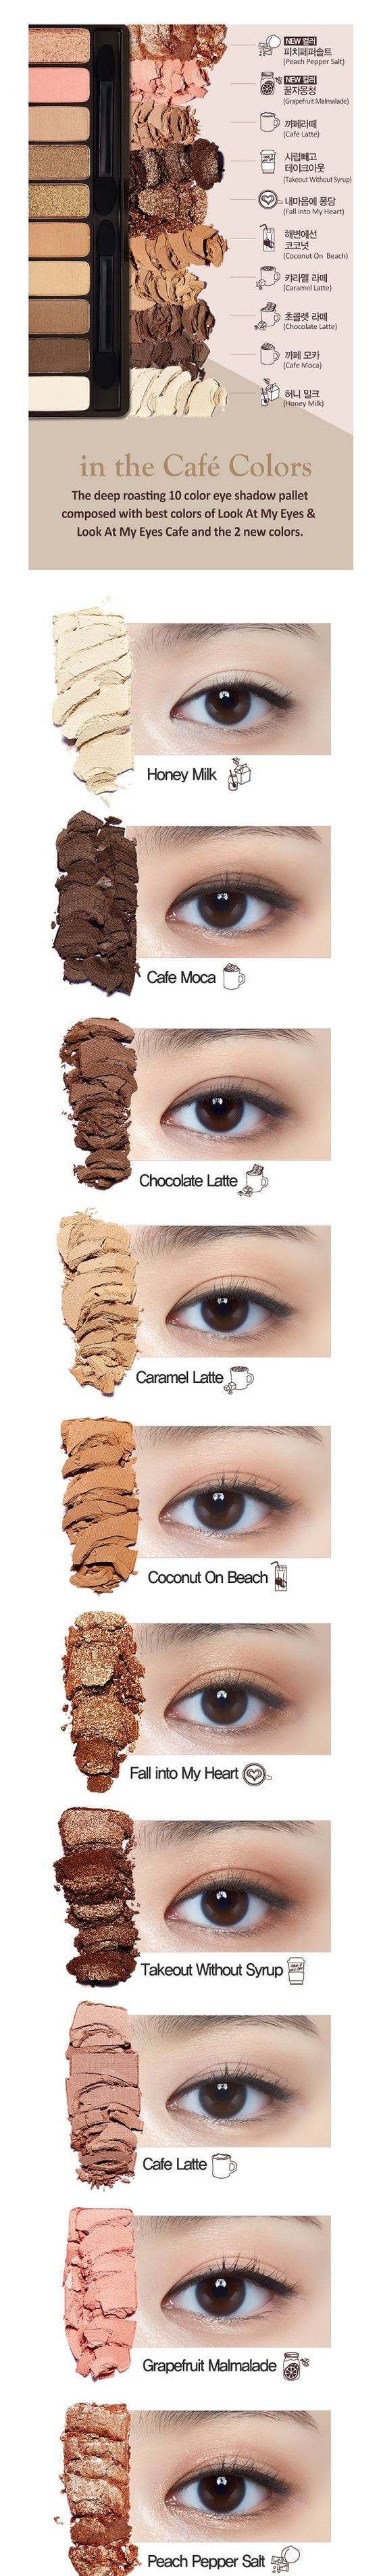 Etude House - Look At My Eyes Café